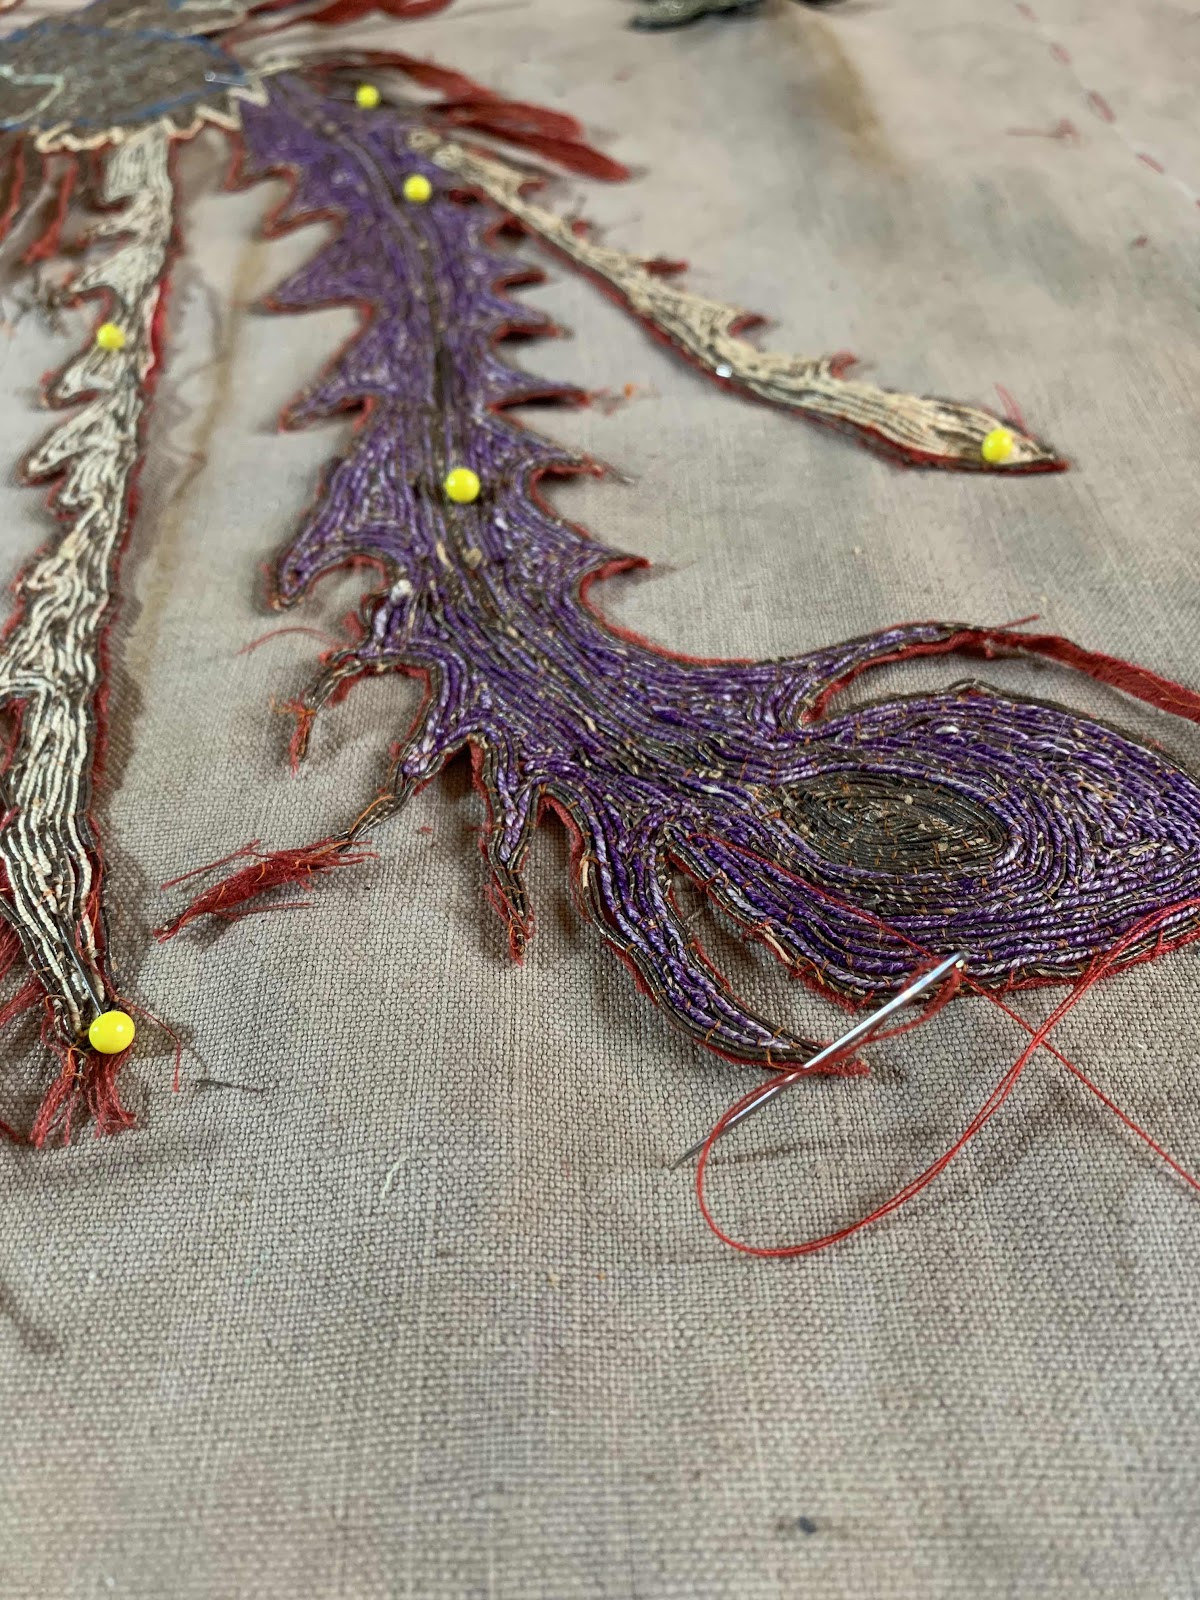 closeup of Phoenix embroidery being stitched onto fabric